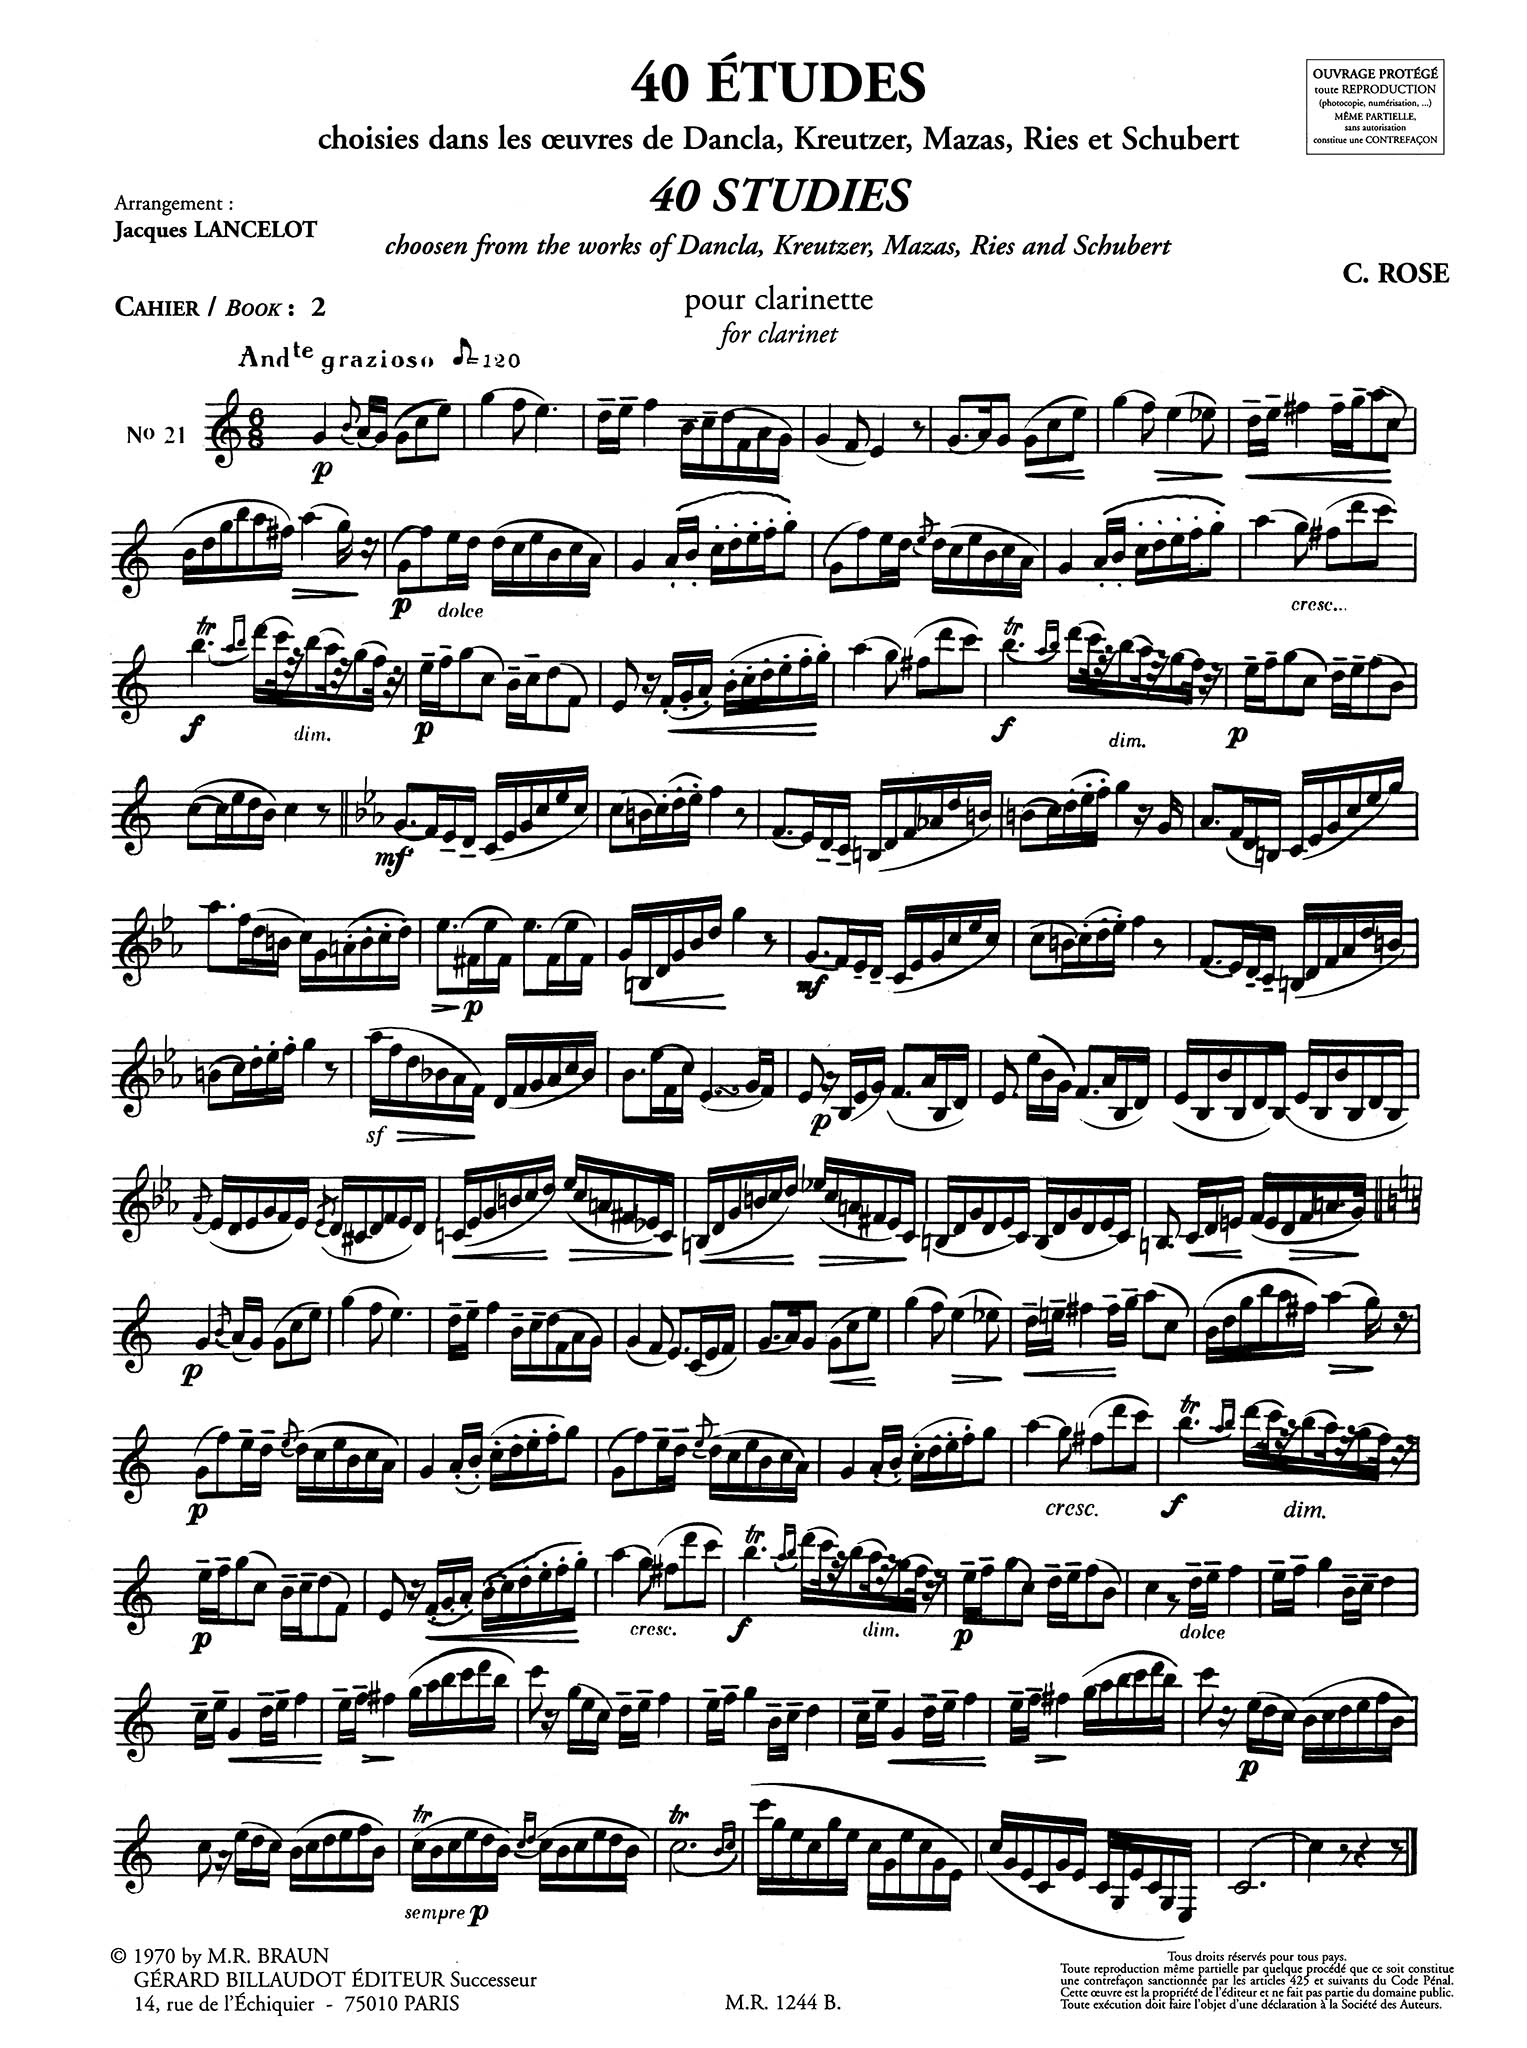 40 Etudes for Clarinet, Book 2 of 2 Page 4